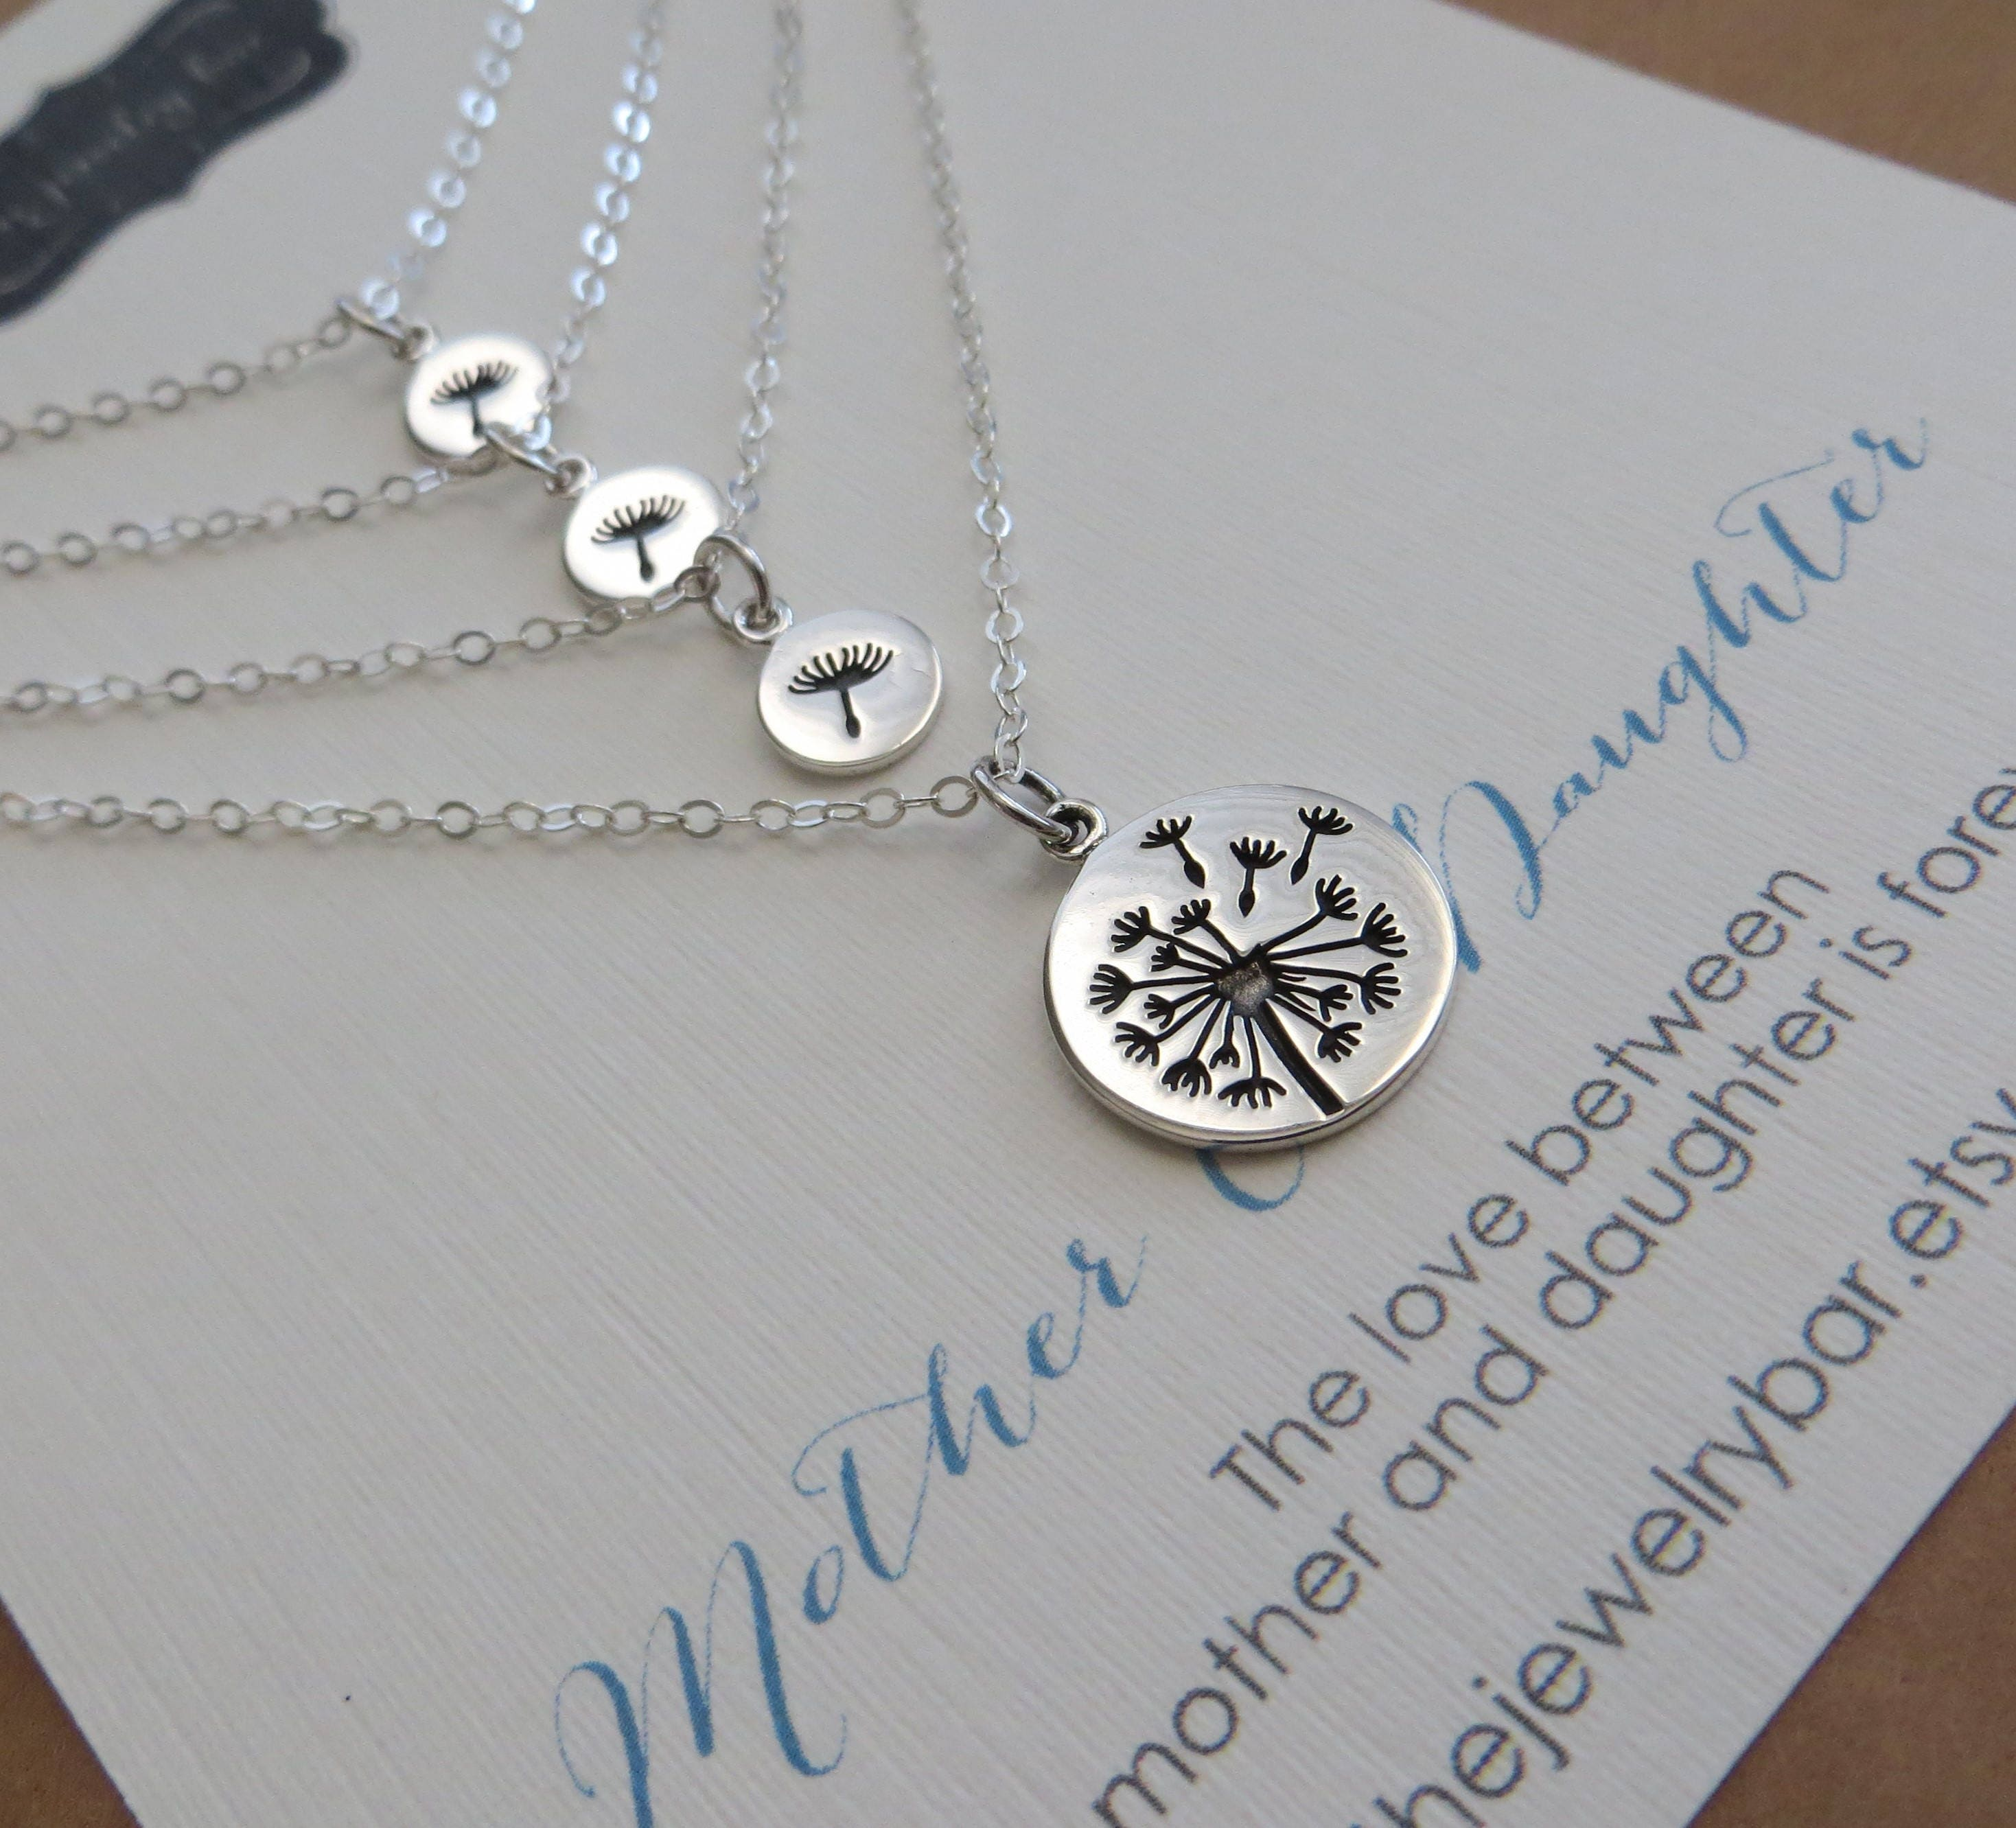 a431bdfd2c9c9 Mother 3 daughter jewelry, Dandelion charm necklace set, sterling silver or  bronze, gift for mom, nature, family, mother daughters gift